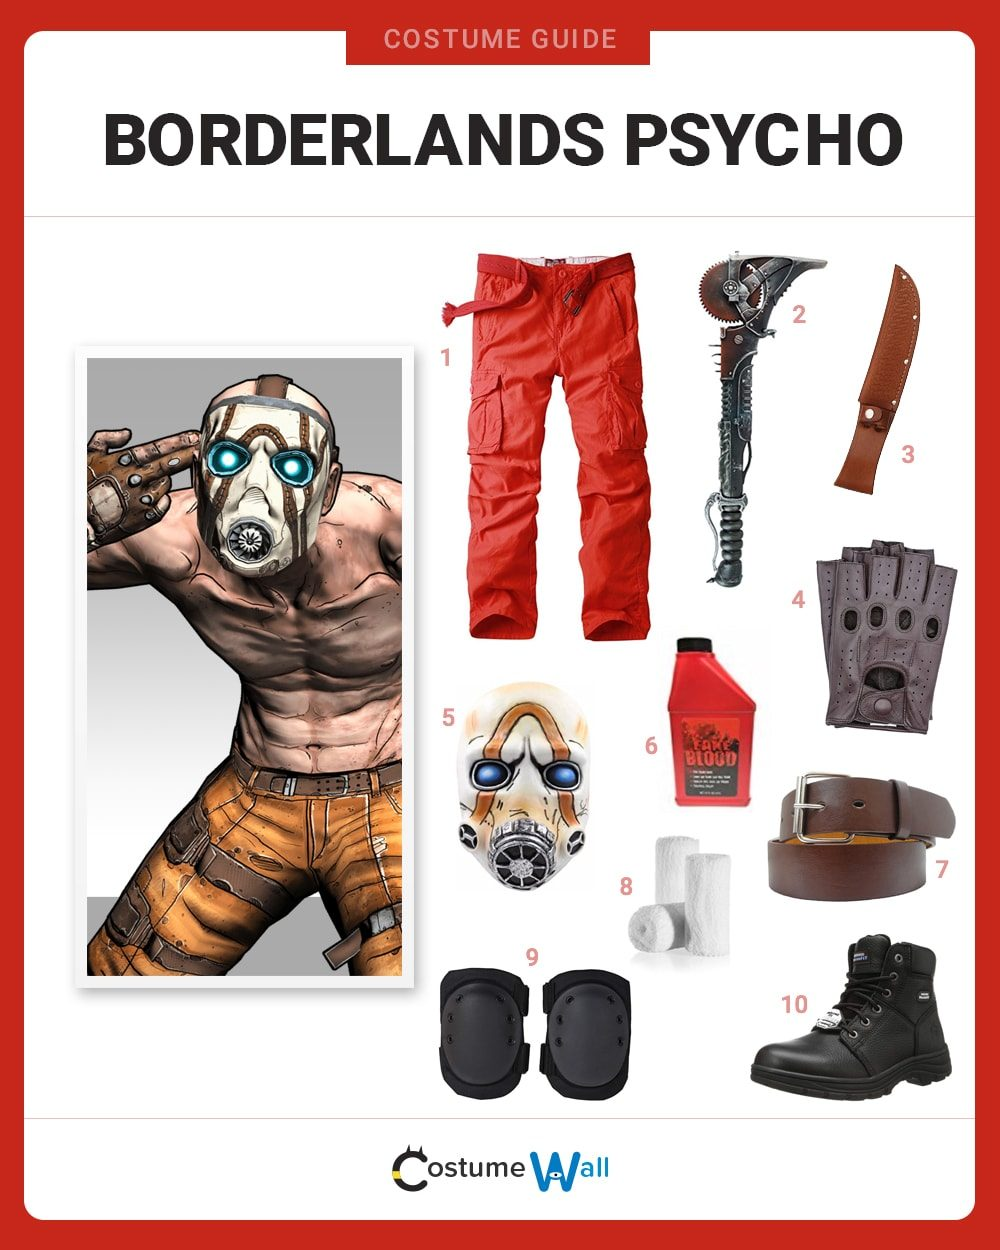 Borderlands Psycho Costume Guide